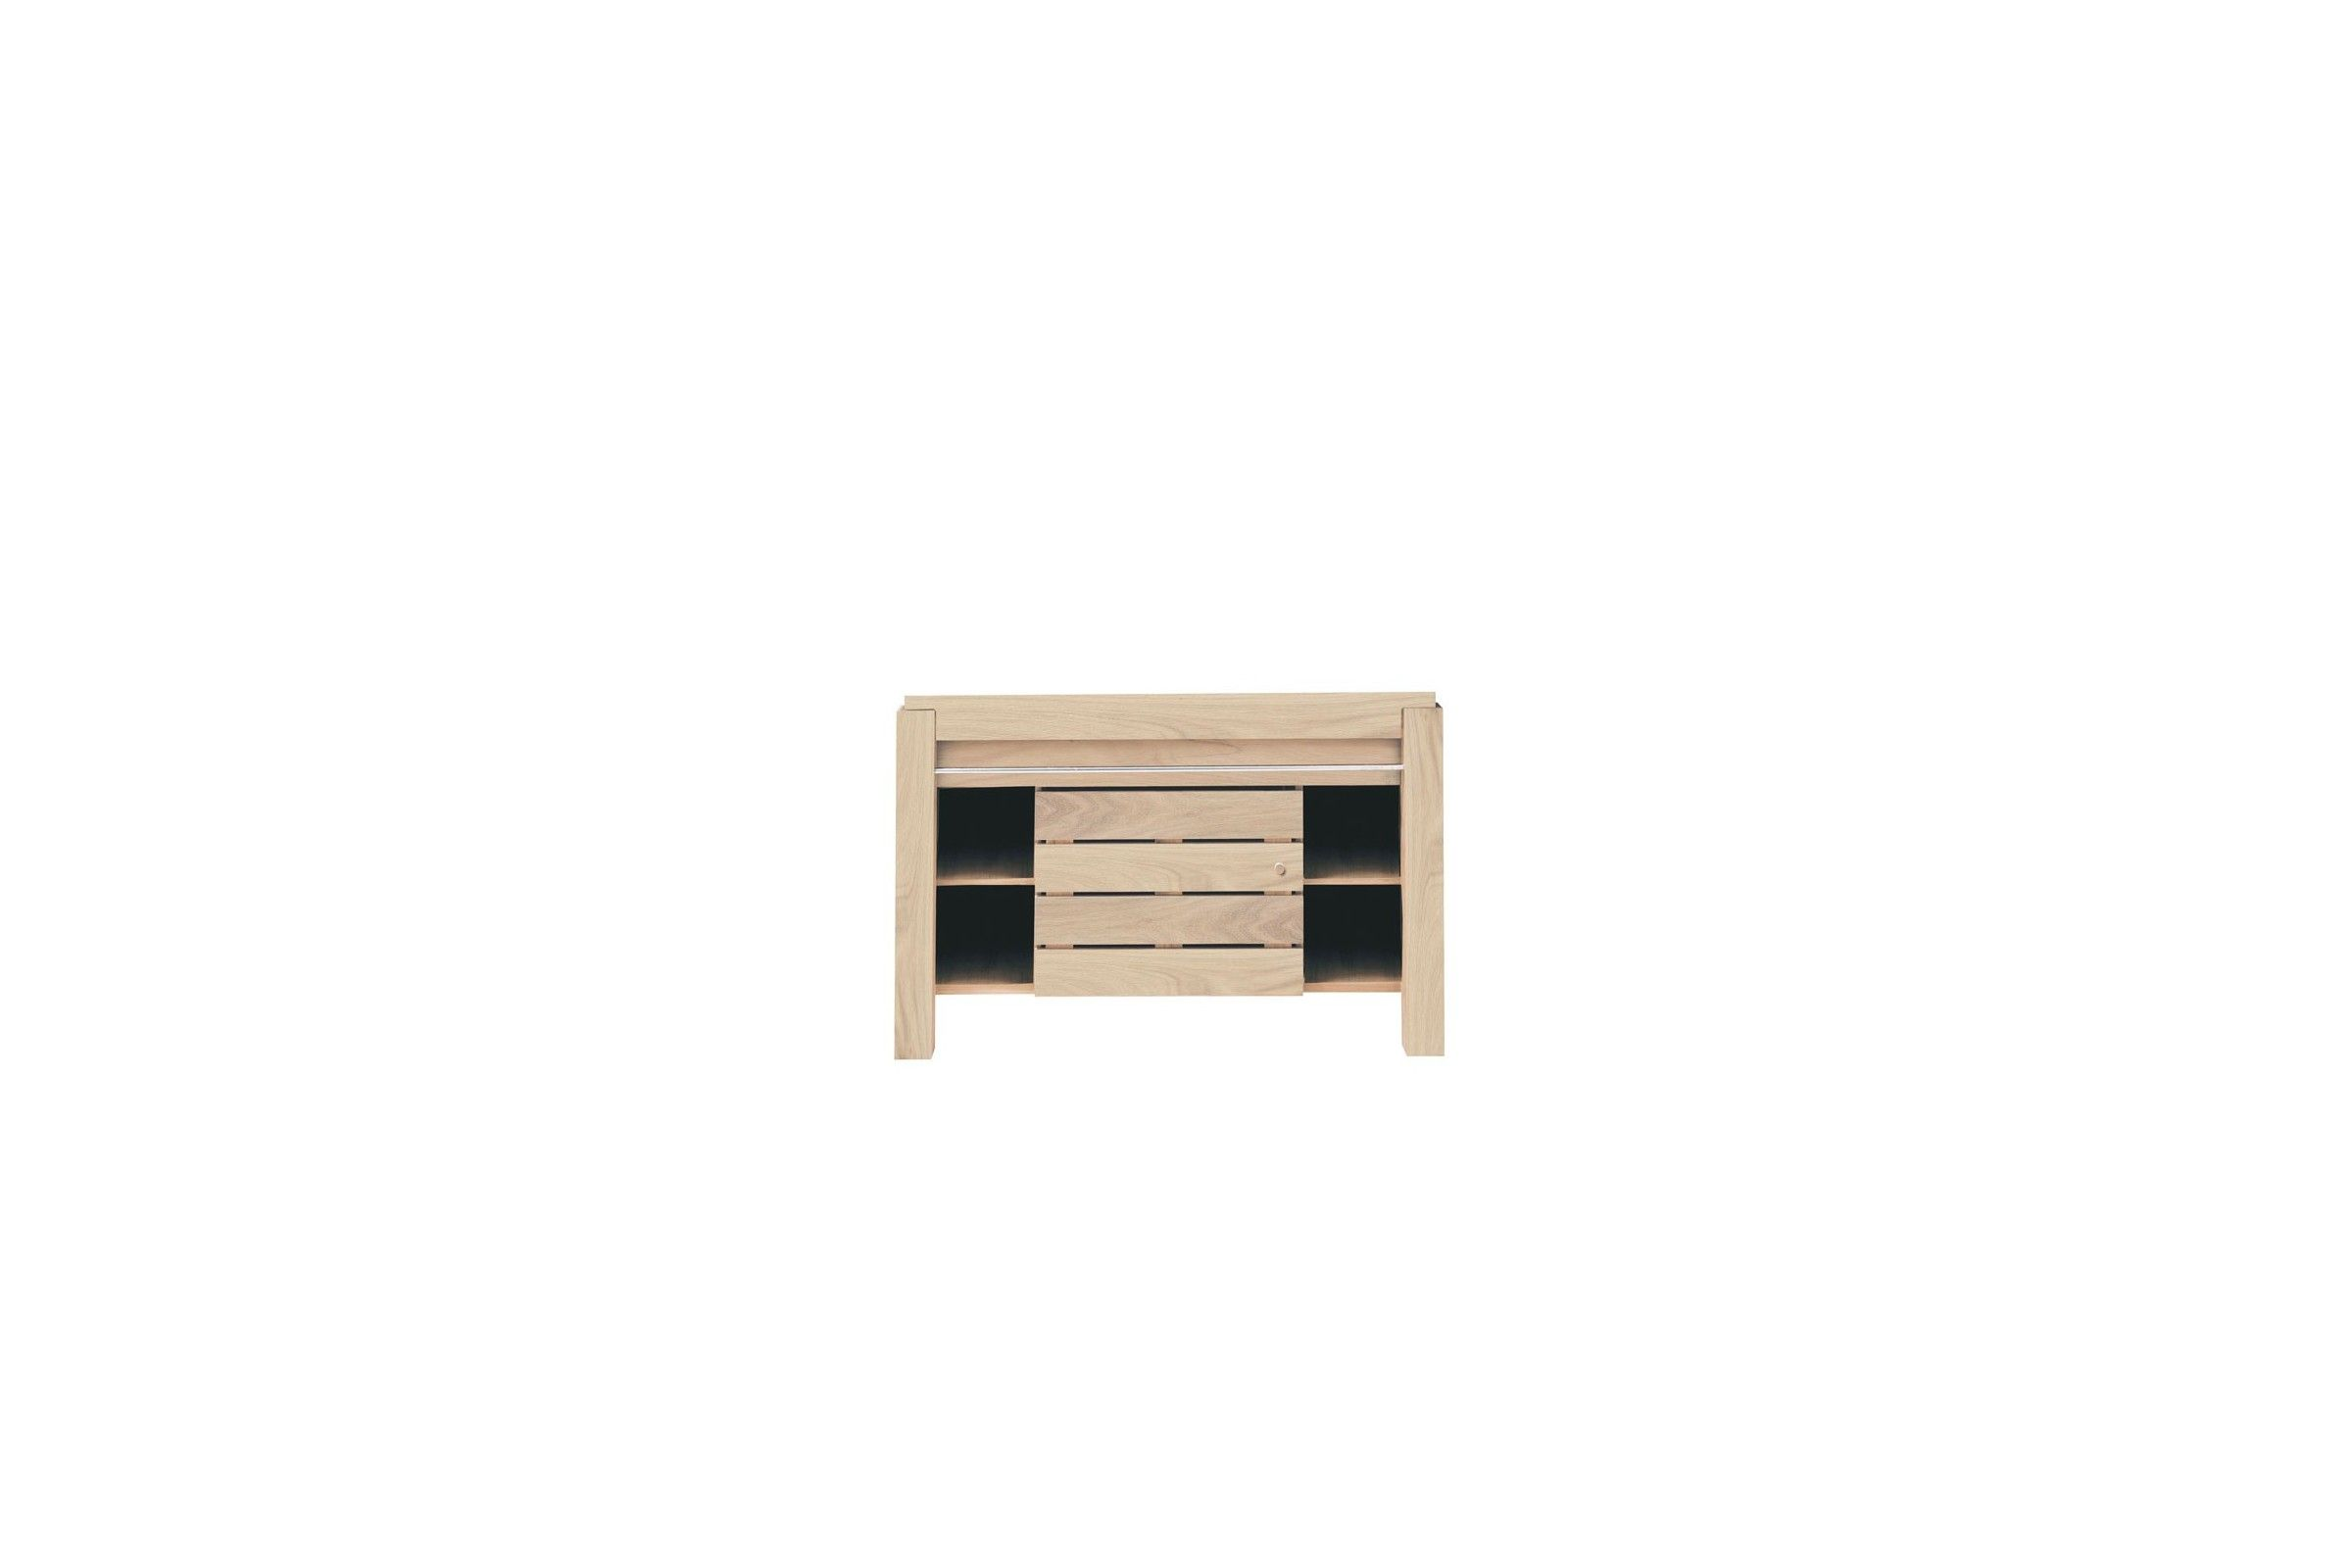 meuble vasque en ch ne massif avec une porte gamme origin. Black Bedroom Furniture Sets. Home Design Ideas